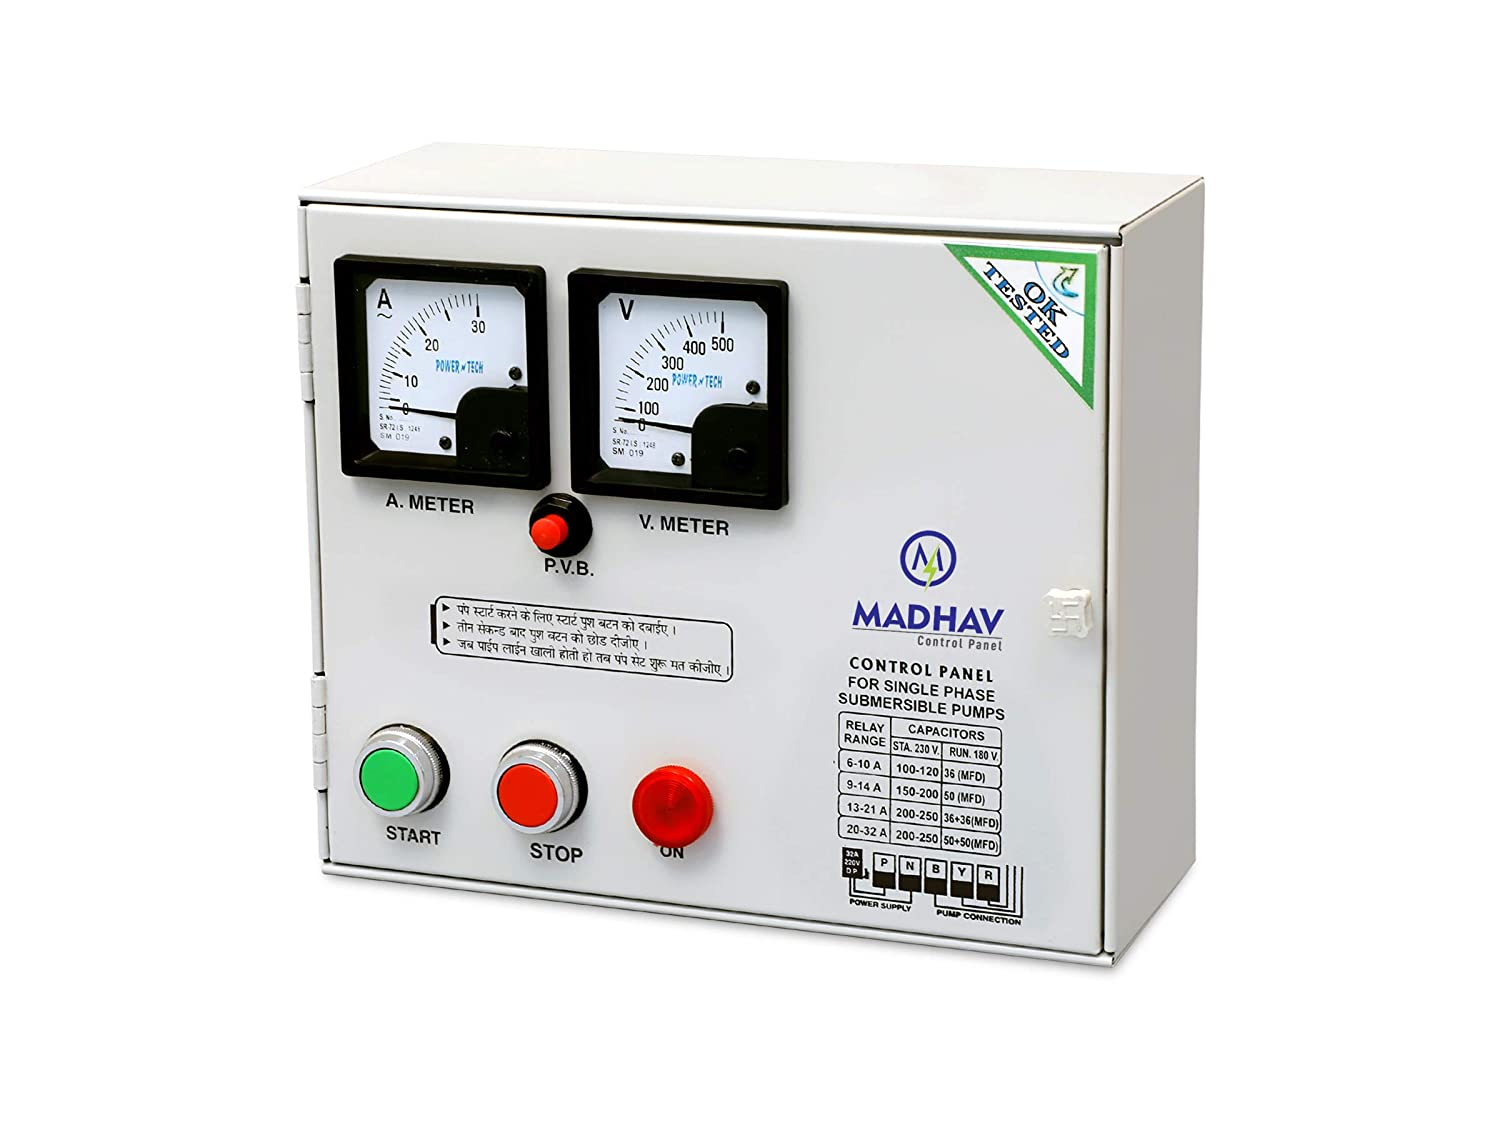 1 5 Hp Single Phase Submersible Pump Control Panel 1 5 Hp Bch Type Starter Amazon In Garden Outdoors